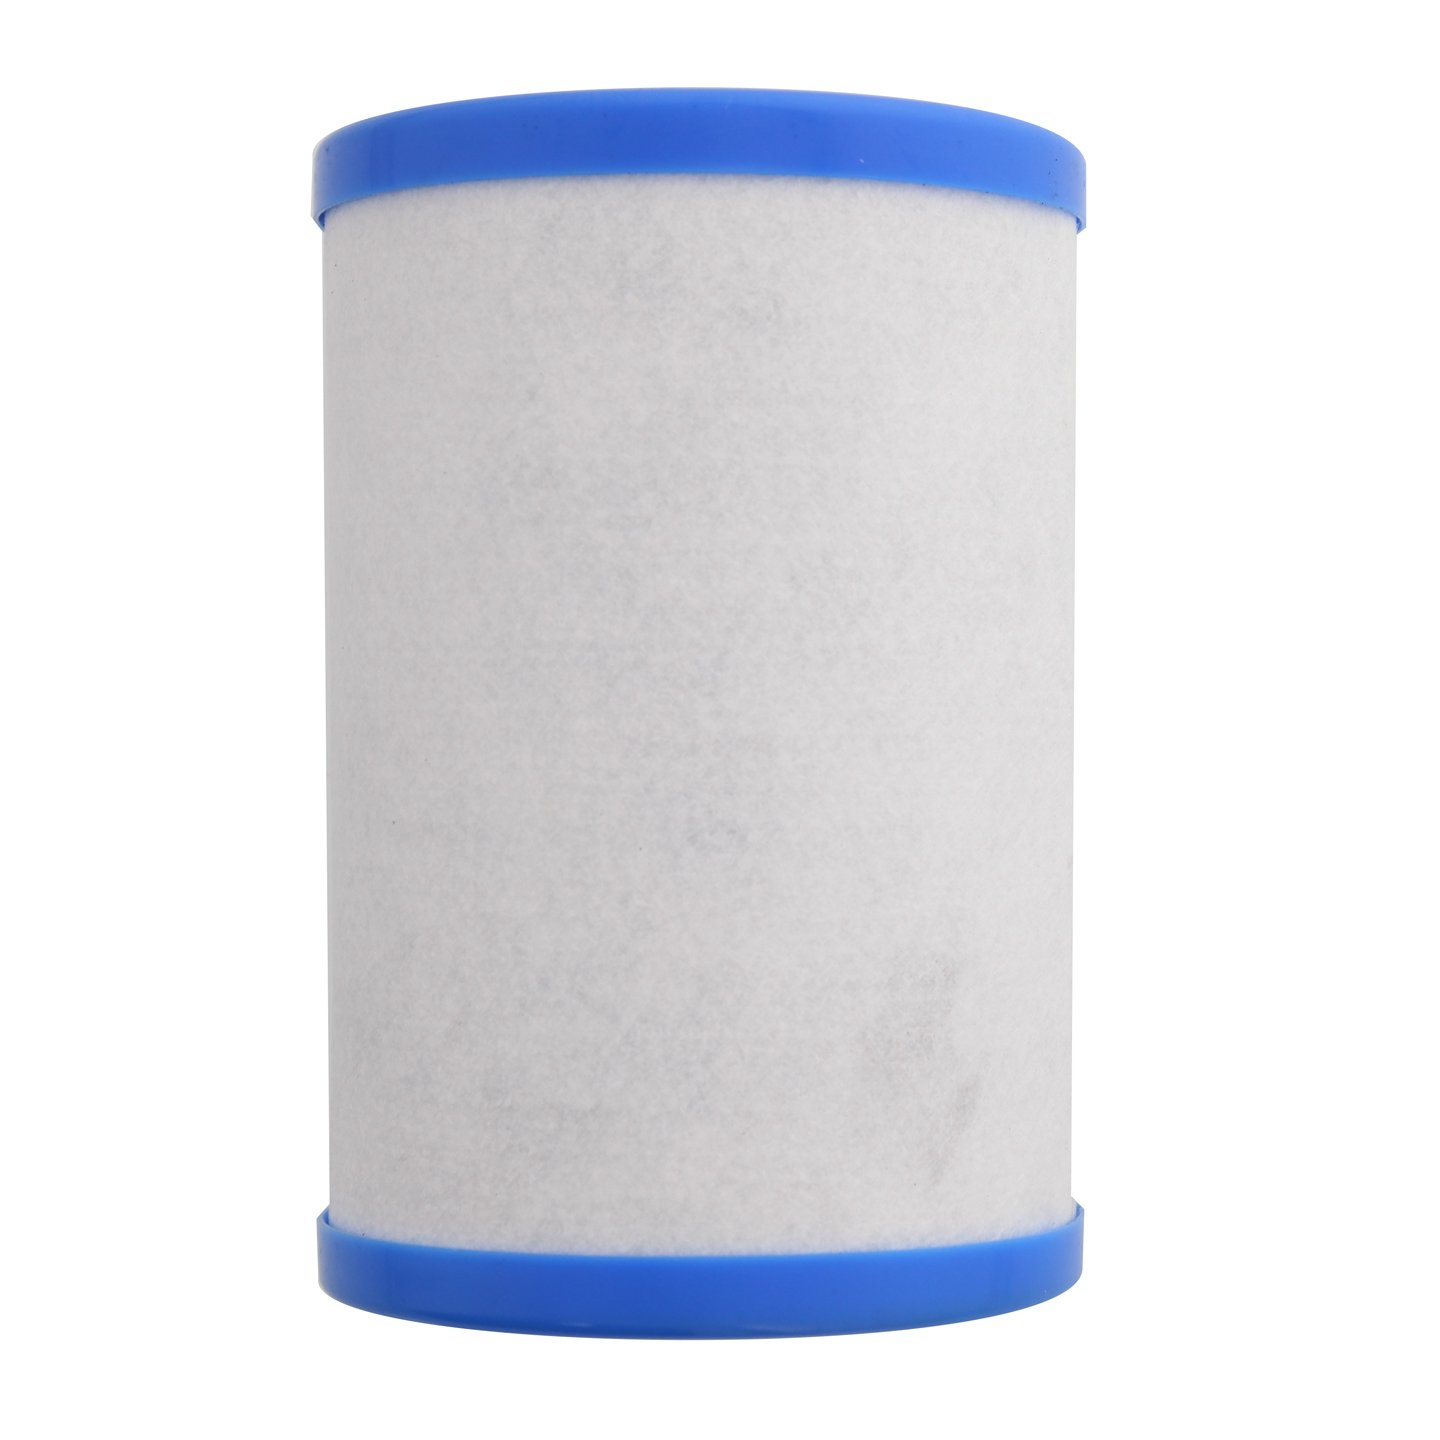 Hydronix HYDRONIX-HF45-10BLBK10 Whole House Replacement Sediment Filter Cartridge